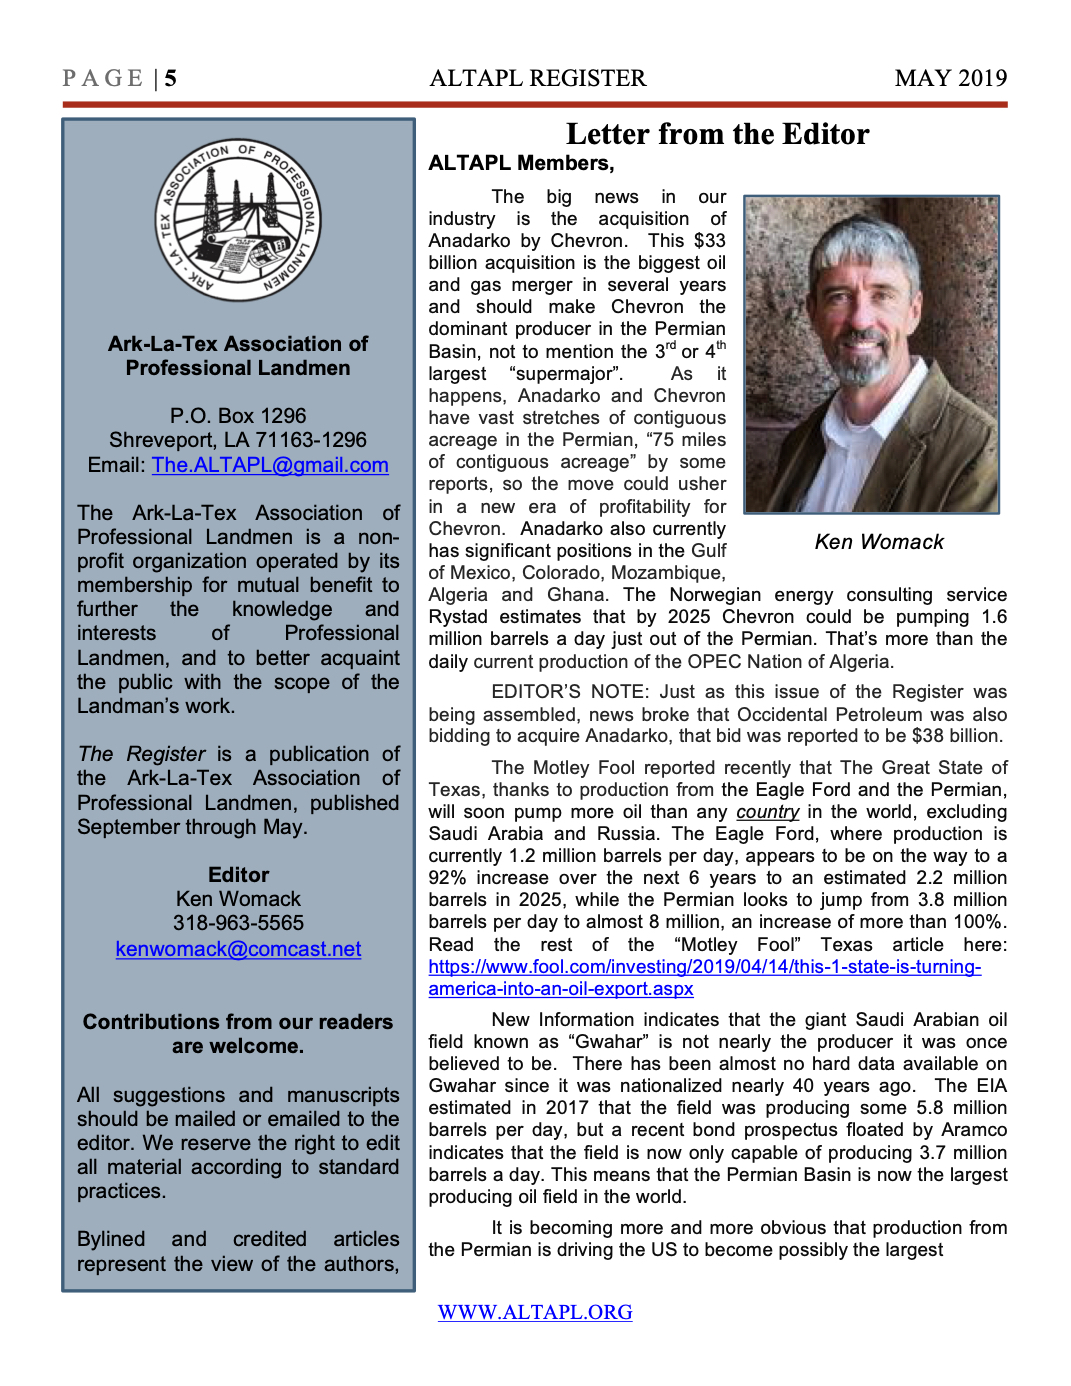 ALTAPL Register May 2019 Page 5.jpg